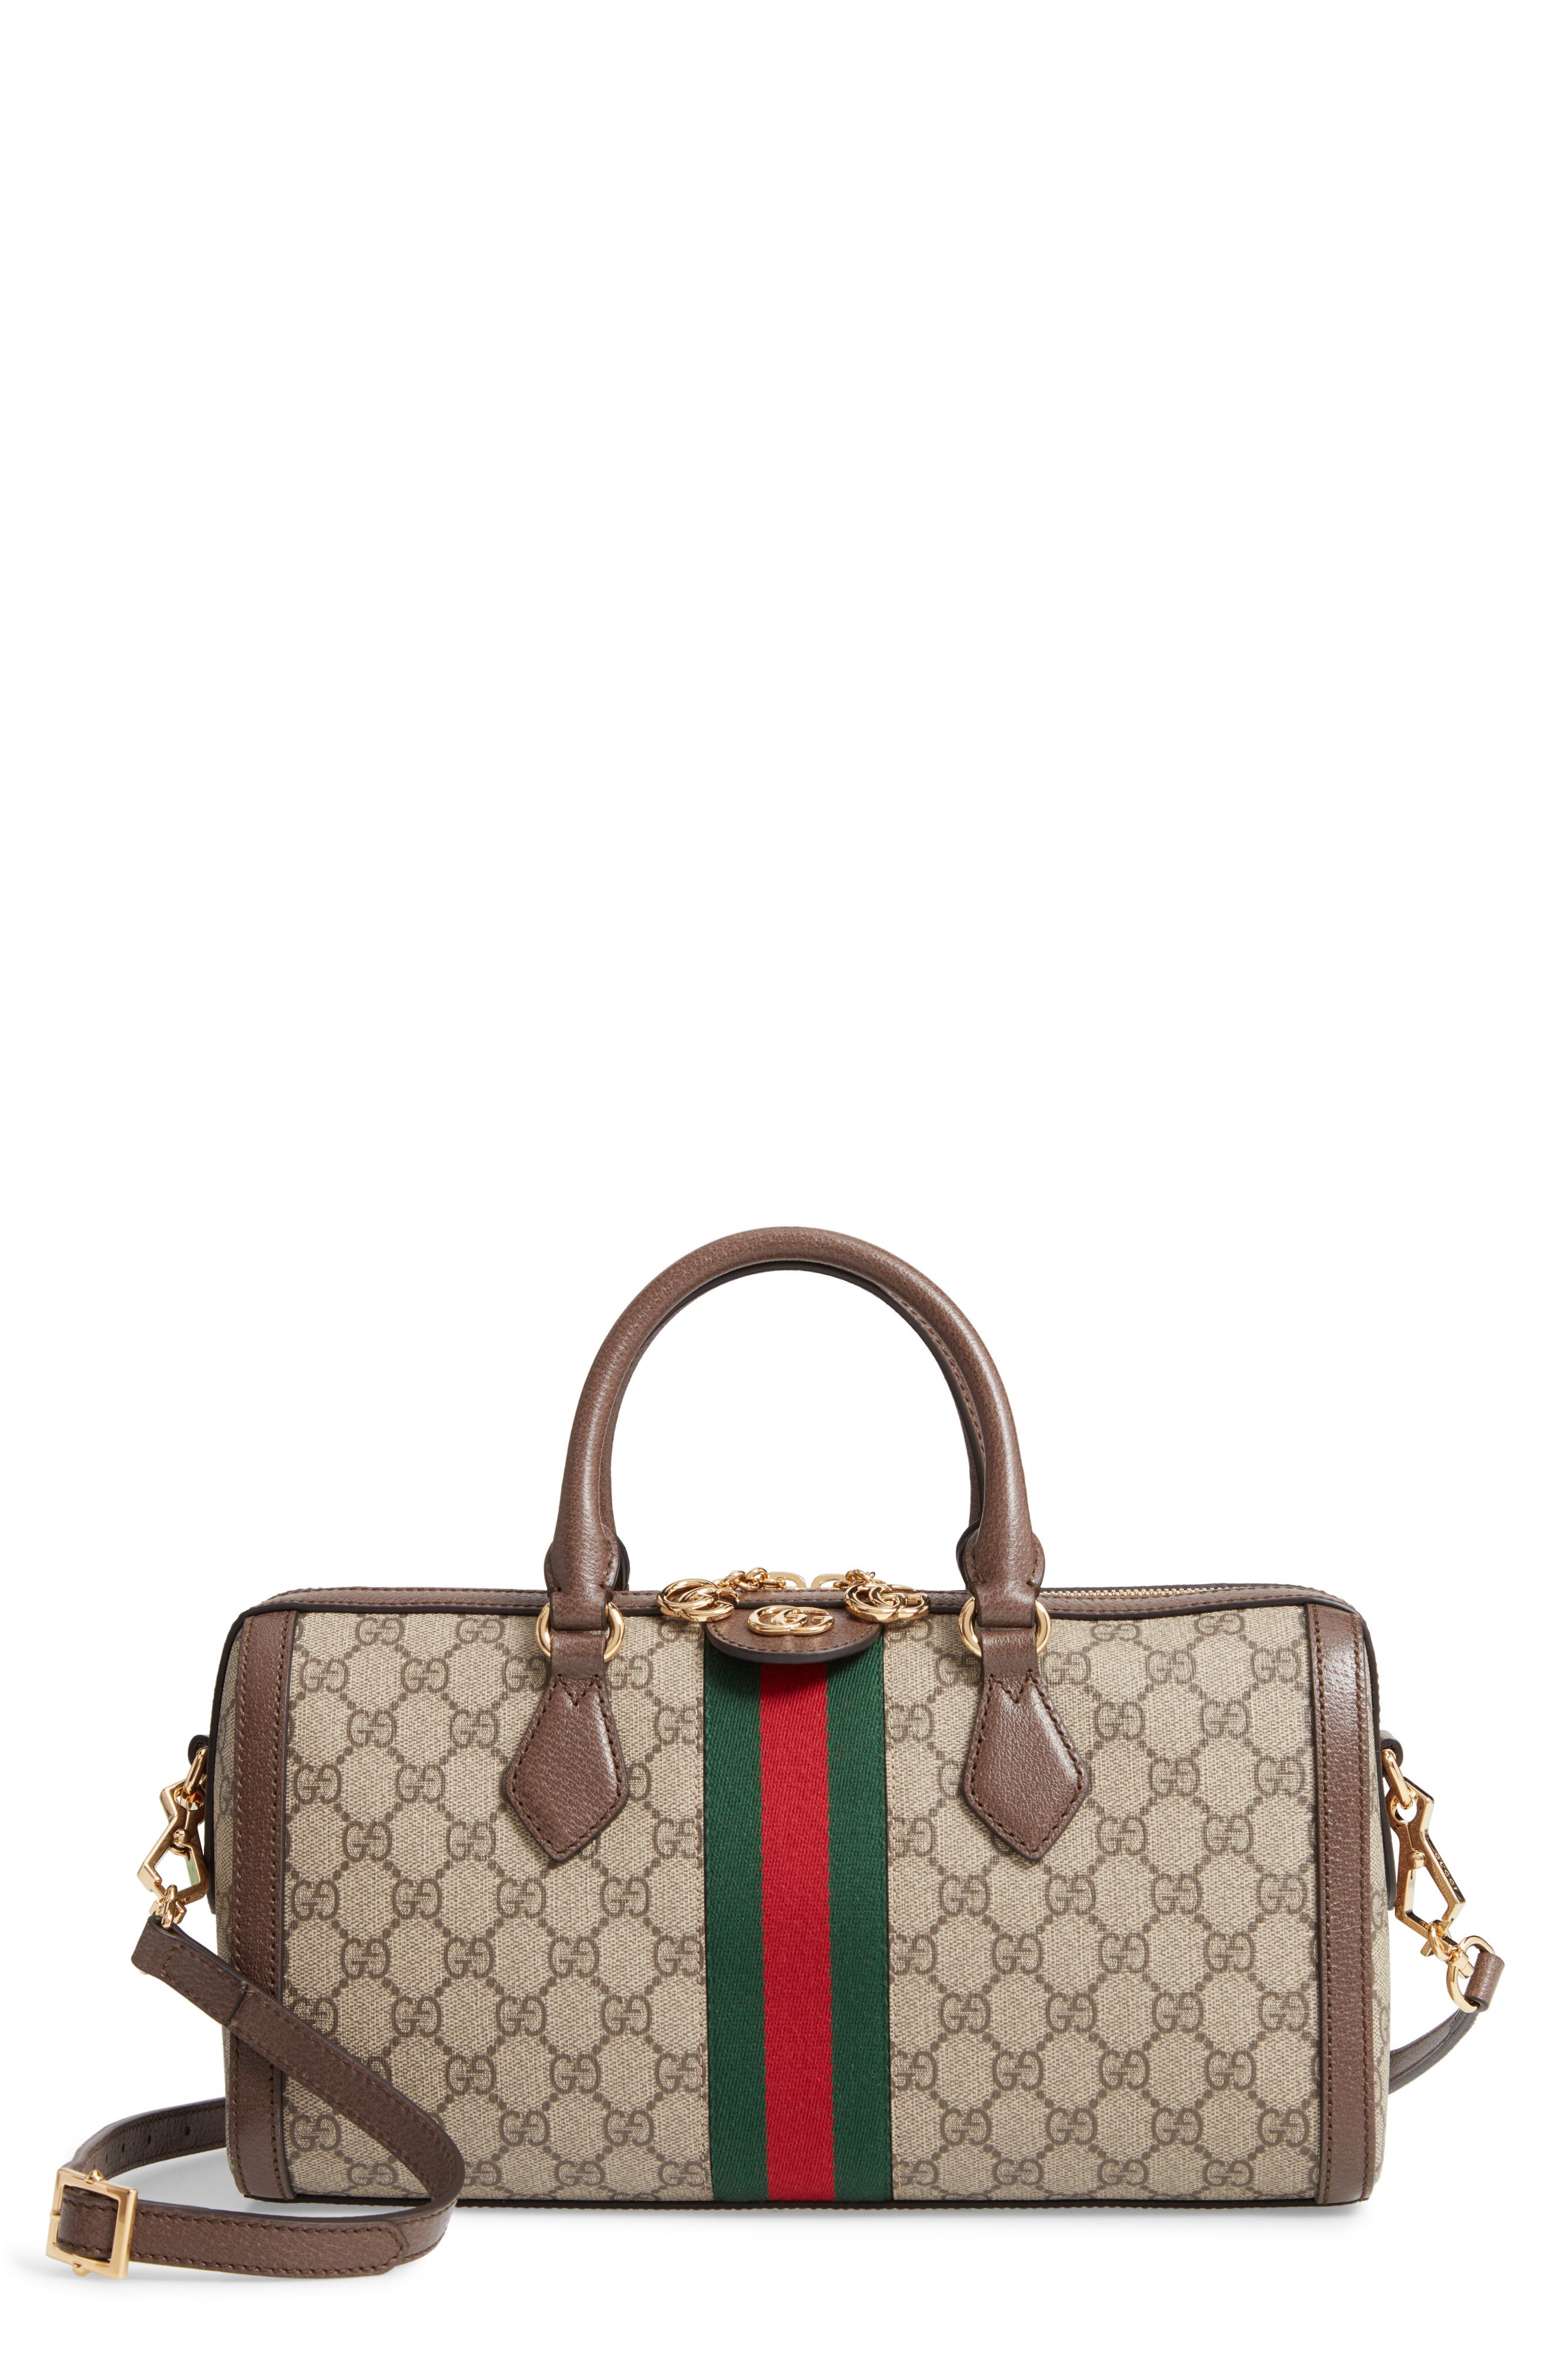 GUCCI, Ophidia GG Supreme Canvas Top Handle Bag, Main thumbnail 1, color, BEIGE EBONY/ ACERO/ VERT RED